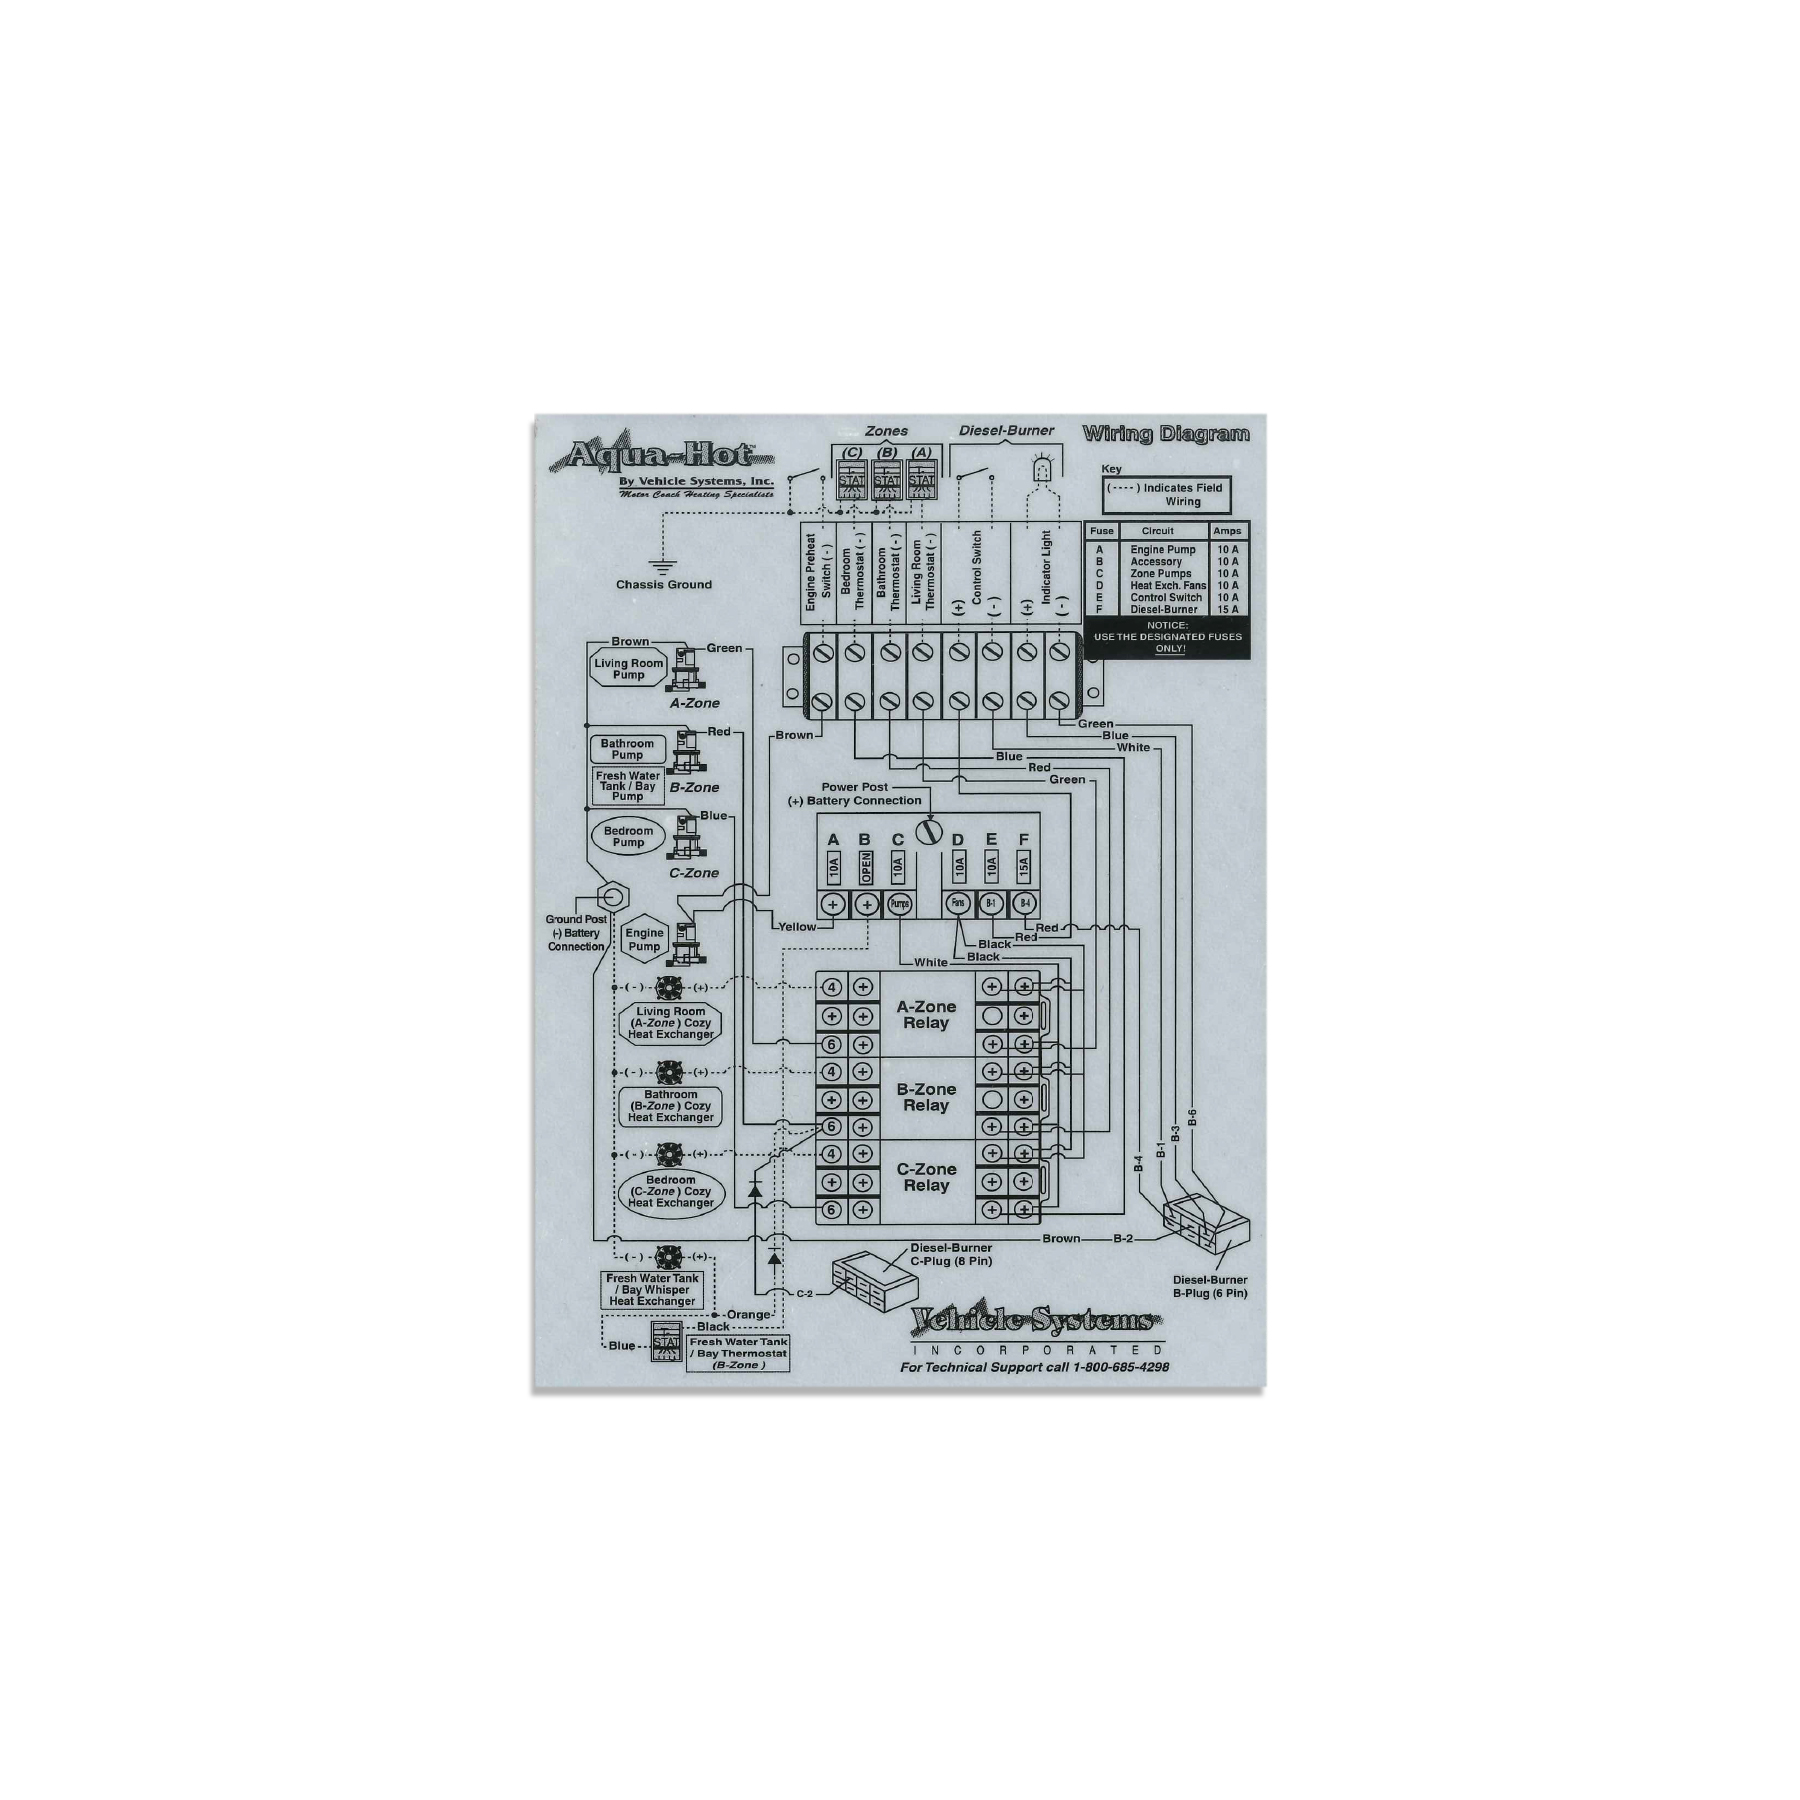 Wiring Diagram Label, 02S, 02X